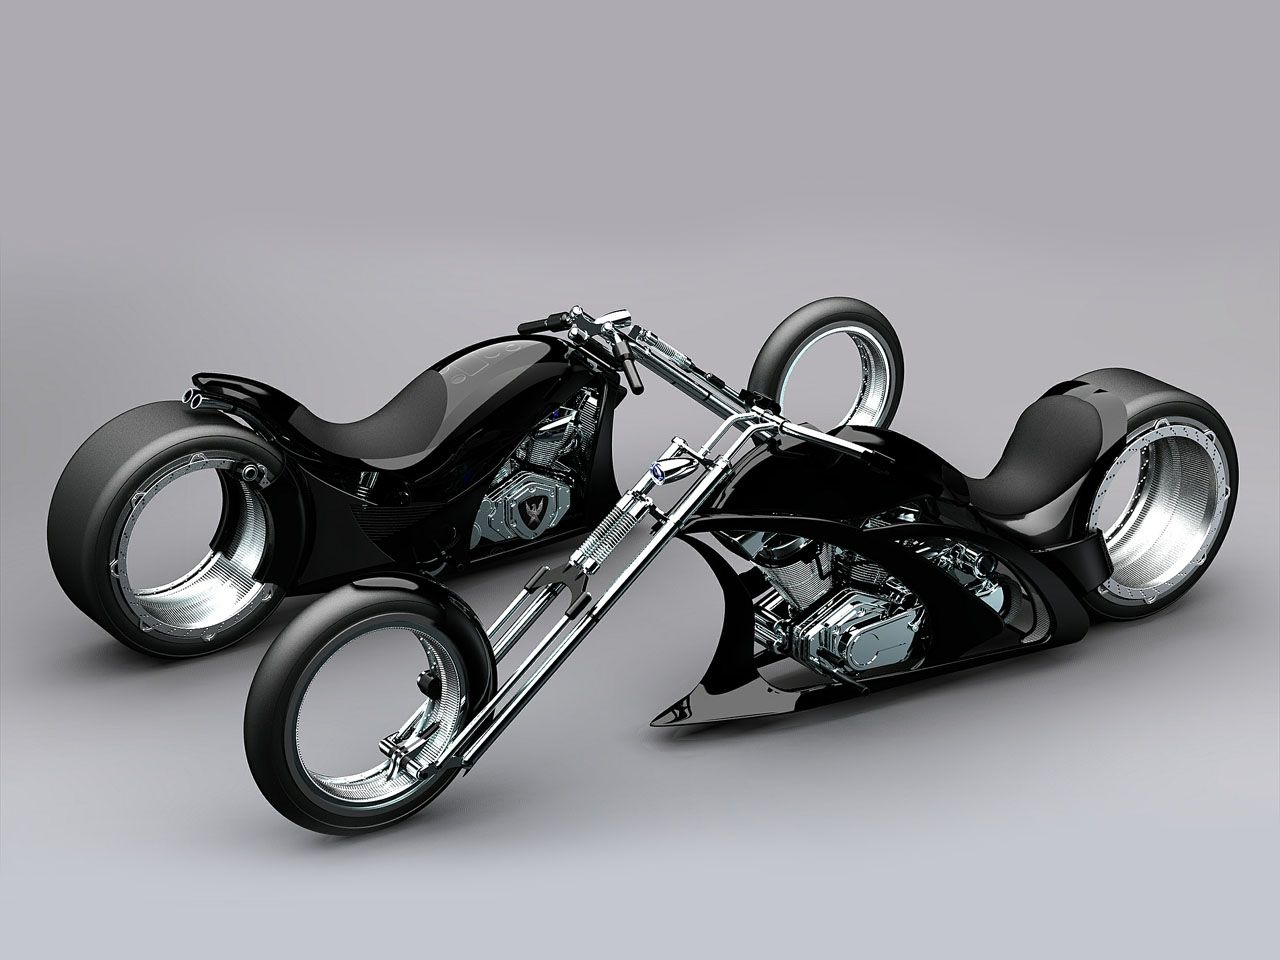 20 Most Creative Future Bike Design Ideas Concept Motorcycles